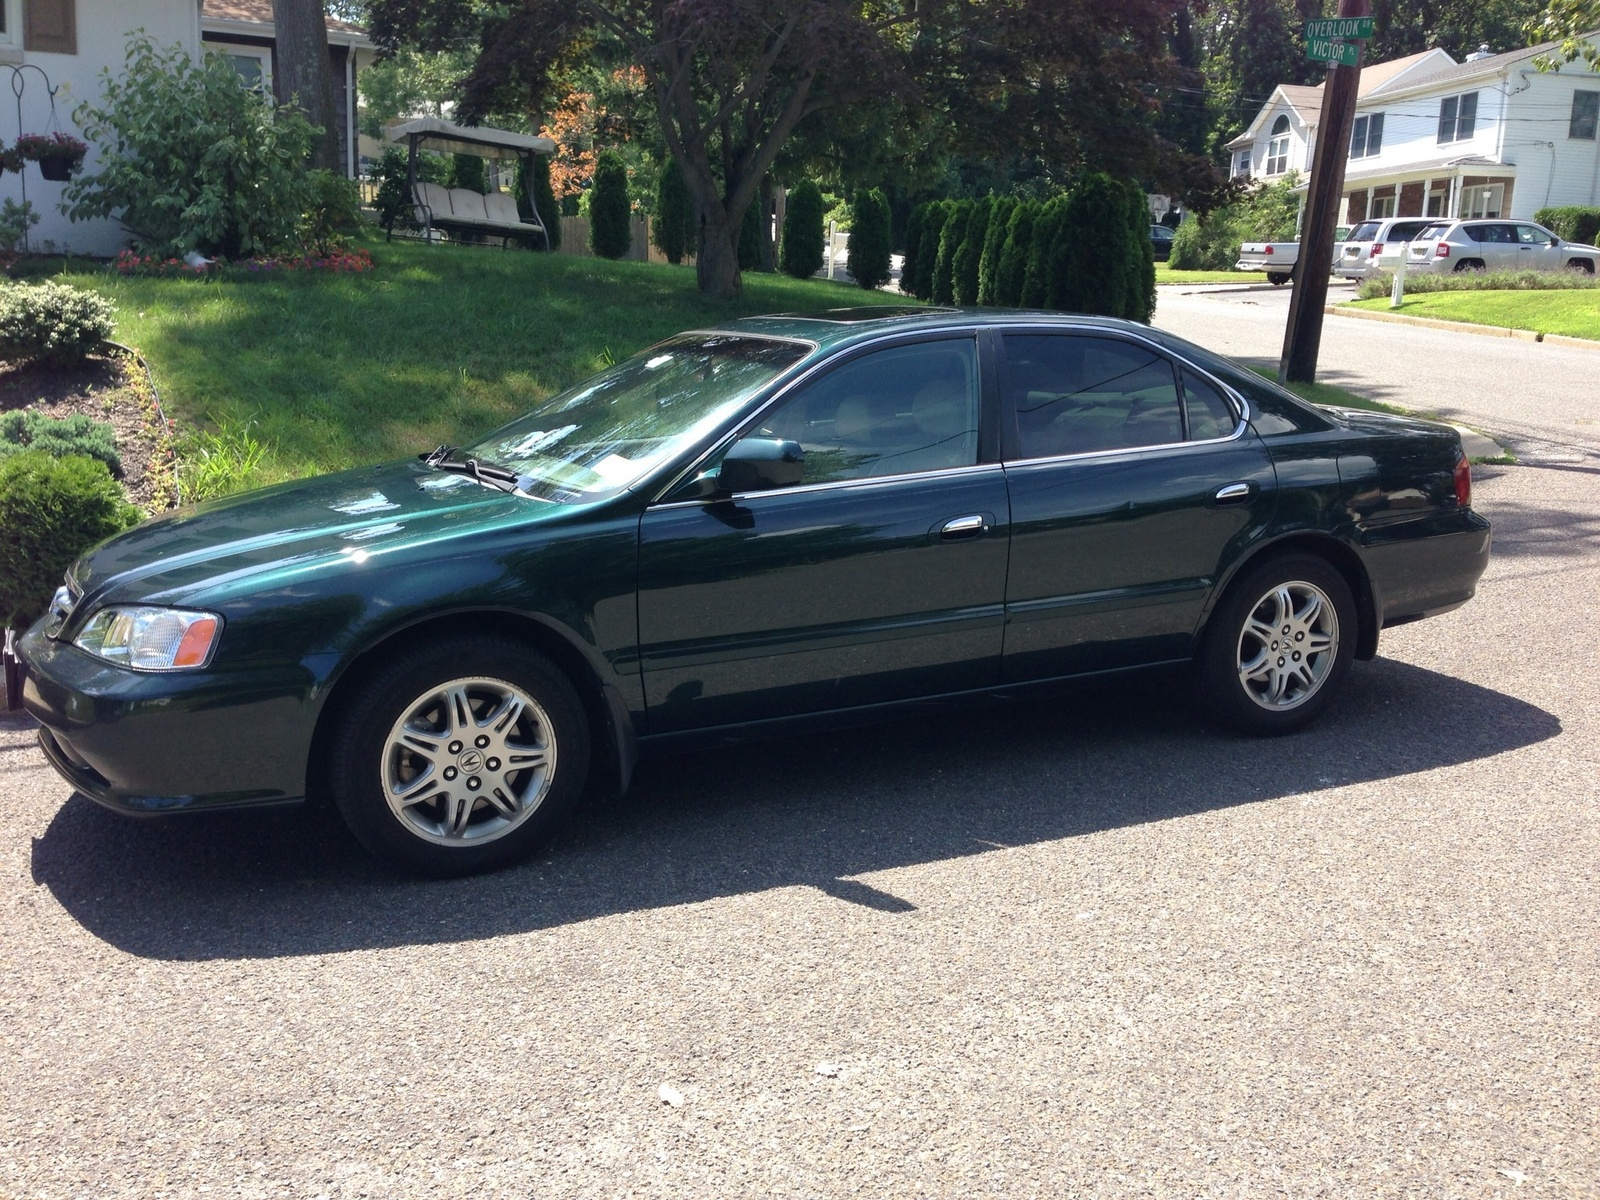 2004 Used Nissan Maxima Picture of 2001 Acura TL 3.2TL, exterior